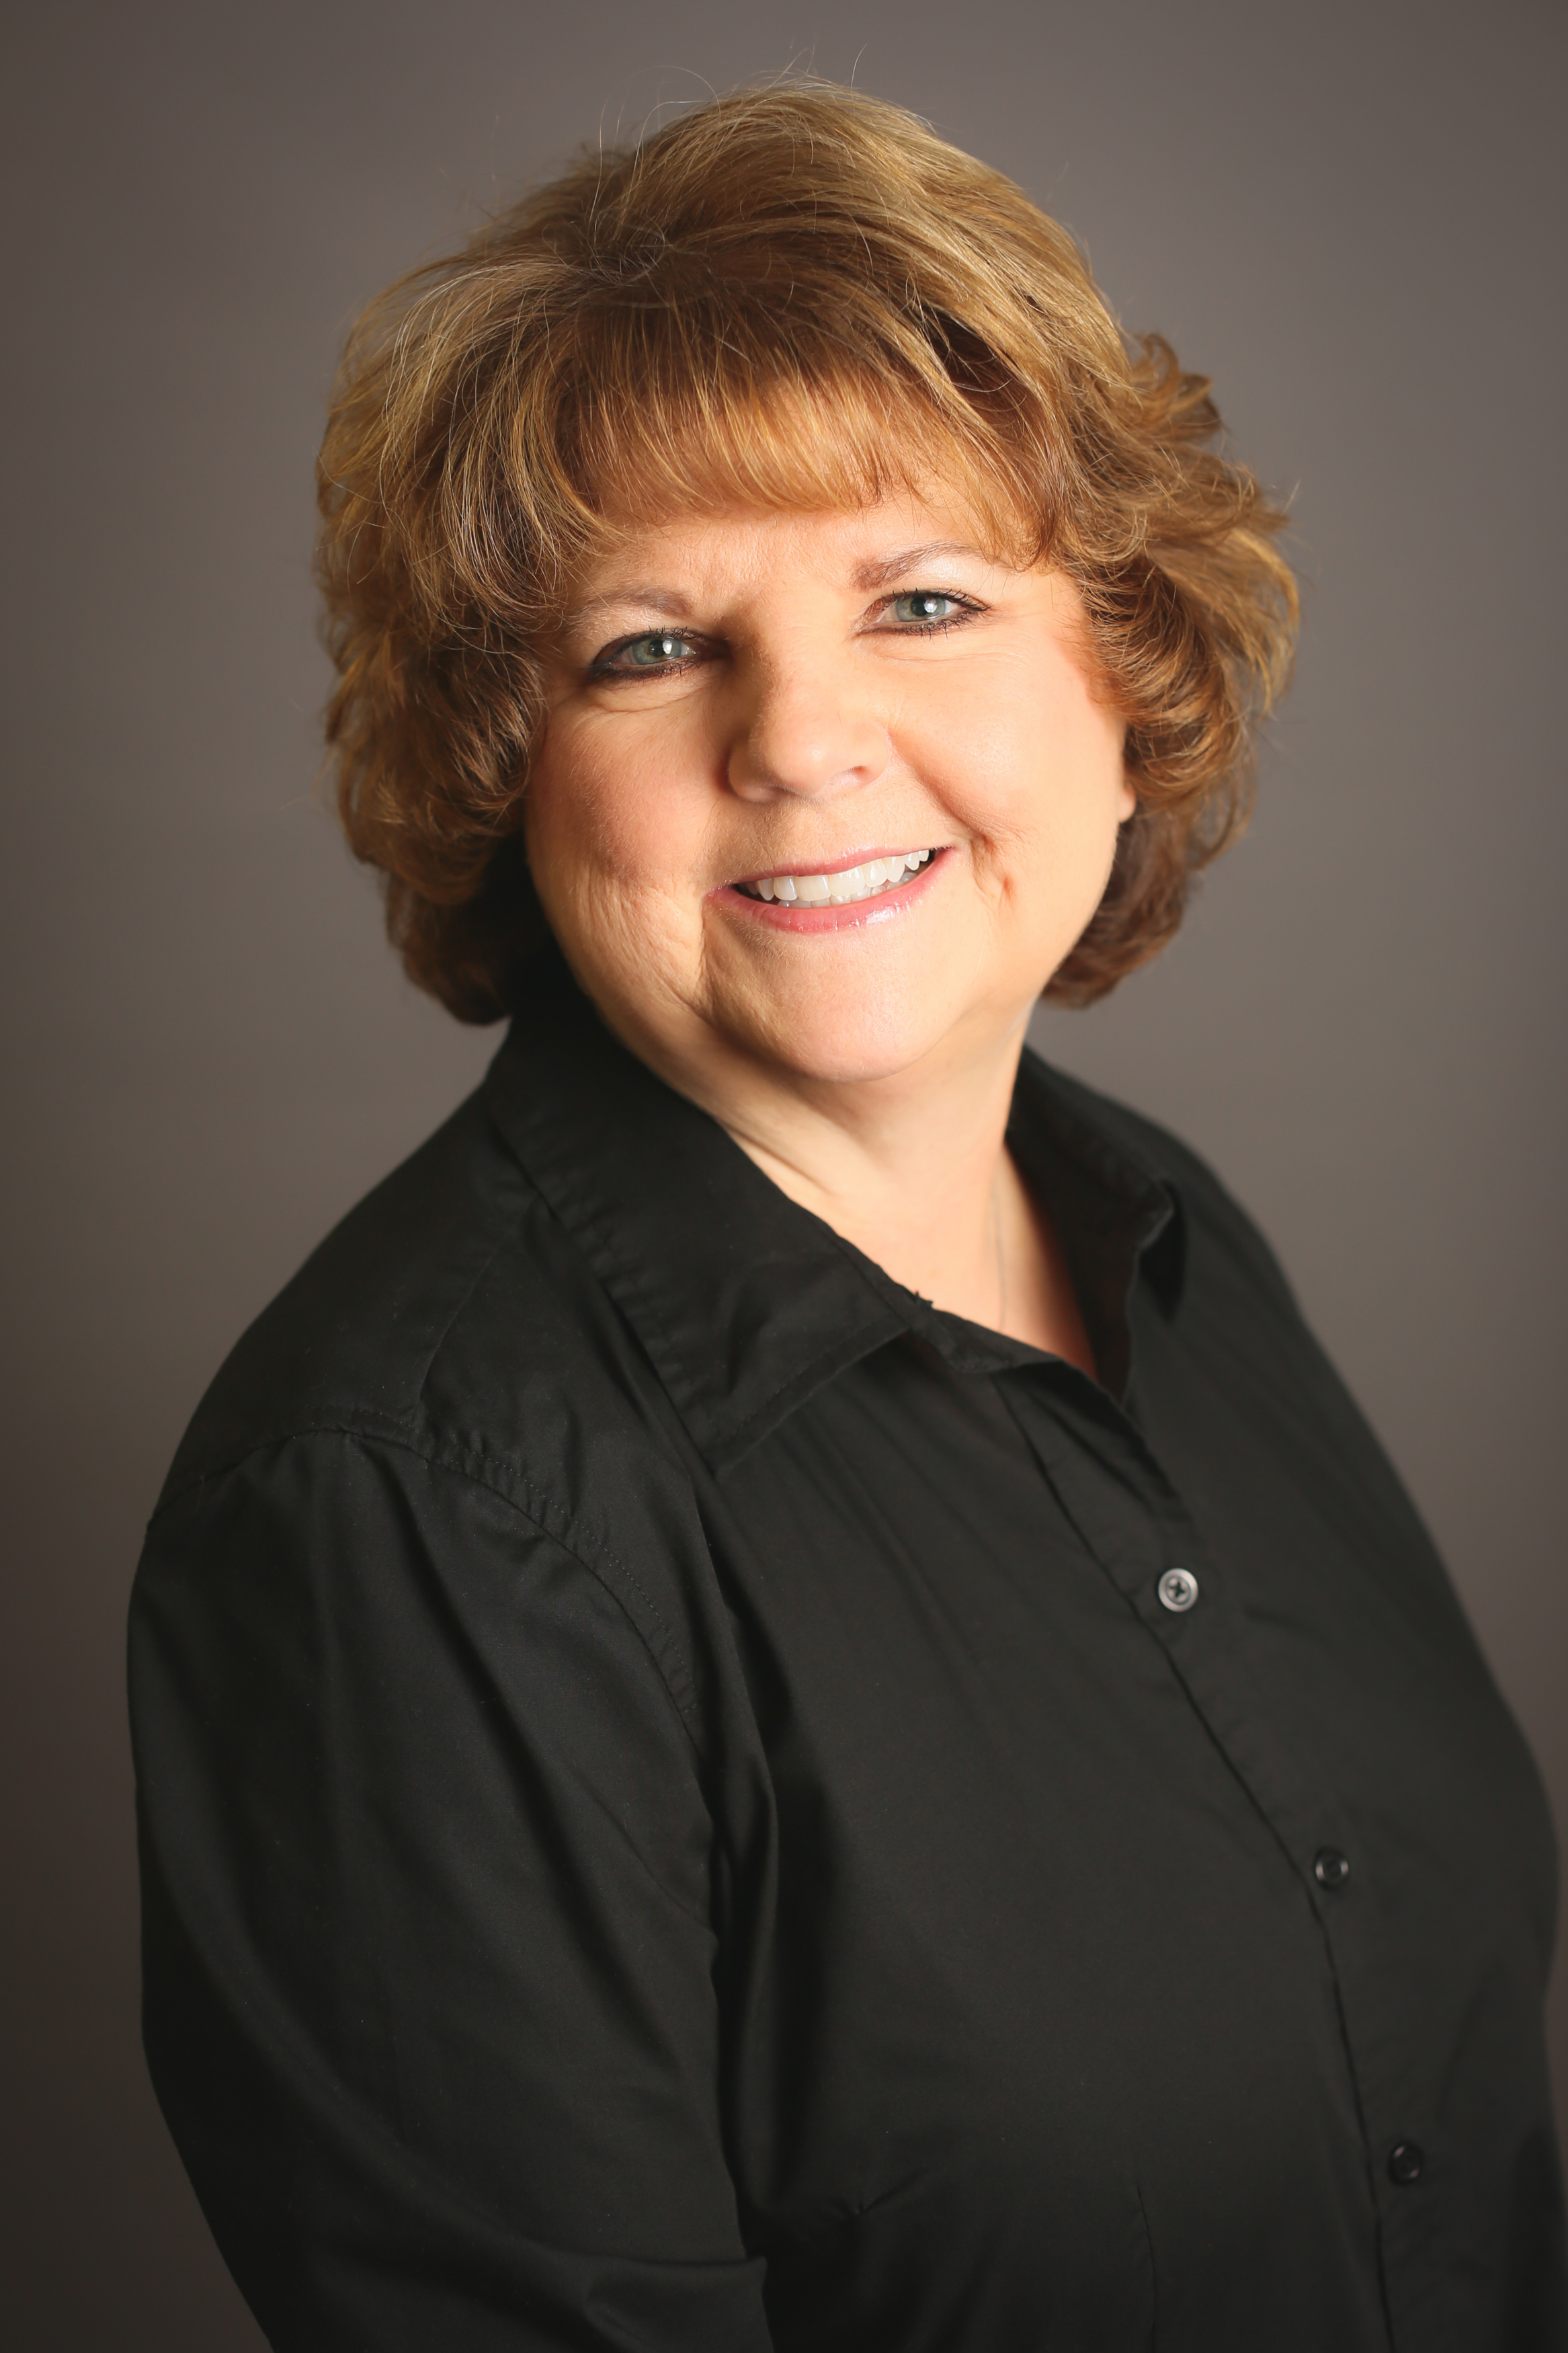 Training: Expanded Functions Dental Assistant<br> Deborah has over 25 years experience in the dental field. Deborah loves cooking - gardening and canning.